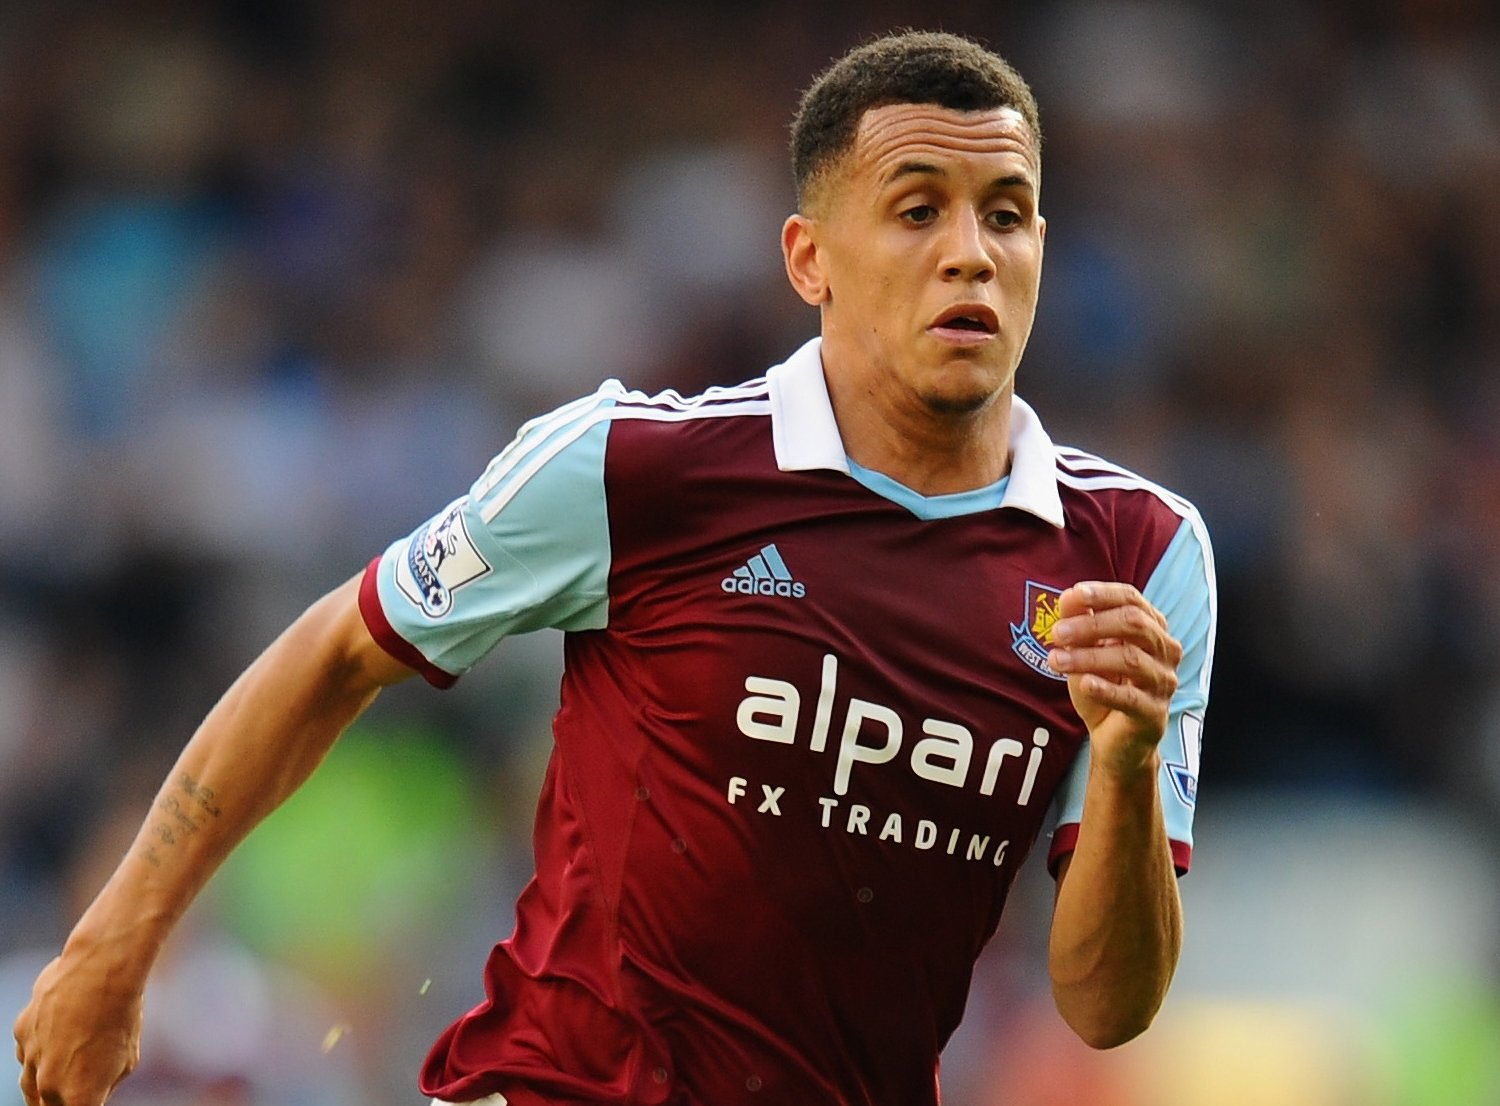 hi-res-183559264-ravel-morrison-of-west-ham-in-action-during-the_crop_exact